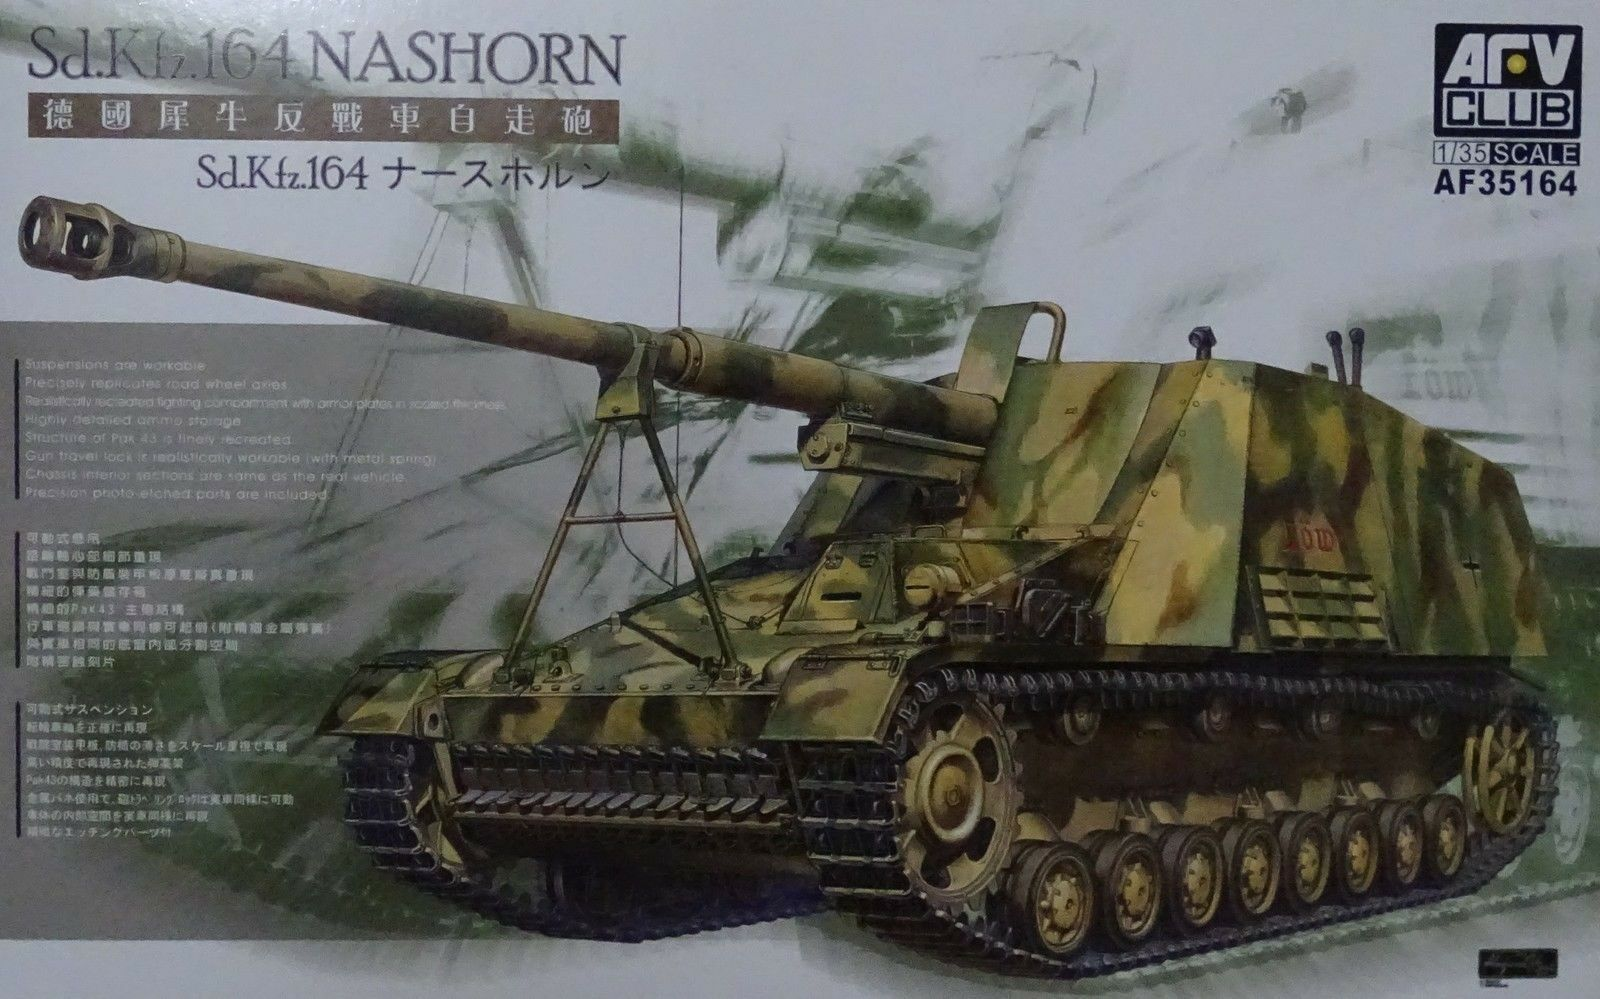 AFV Club Gerhomme sd.kfz.164 Nashorn WWII Scale 1  35 cod.35164  très populaire